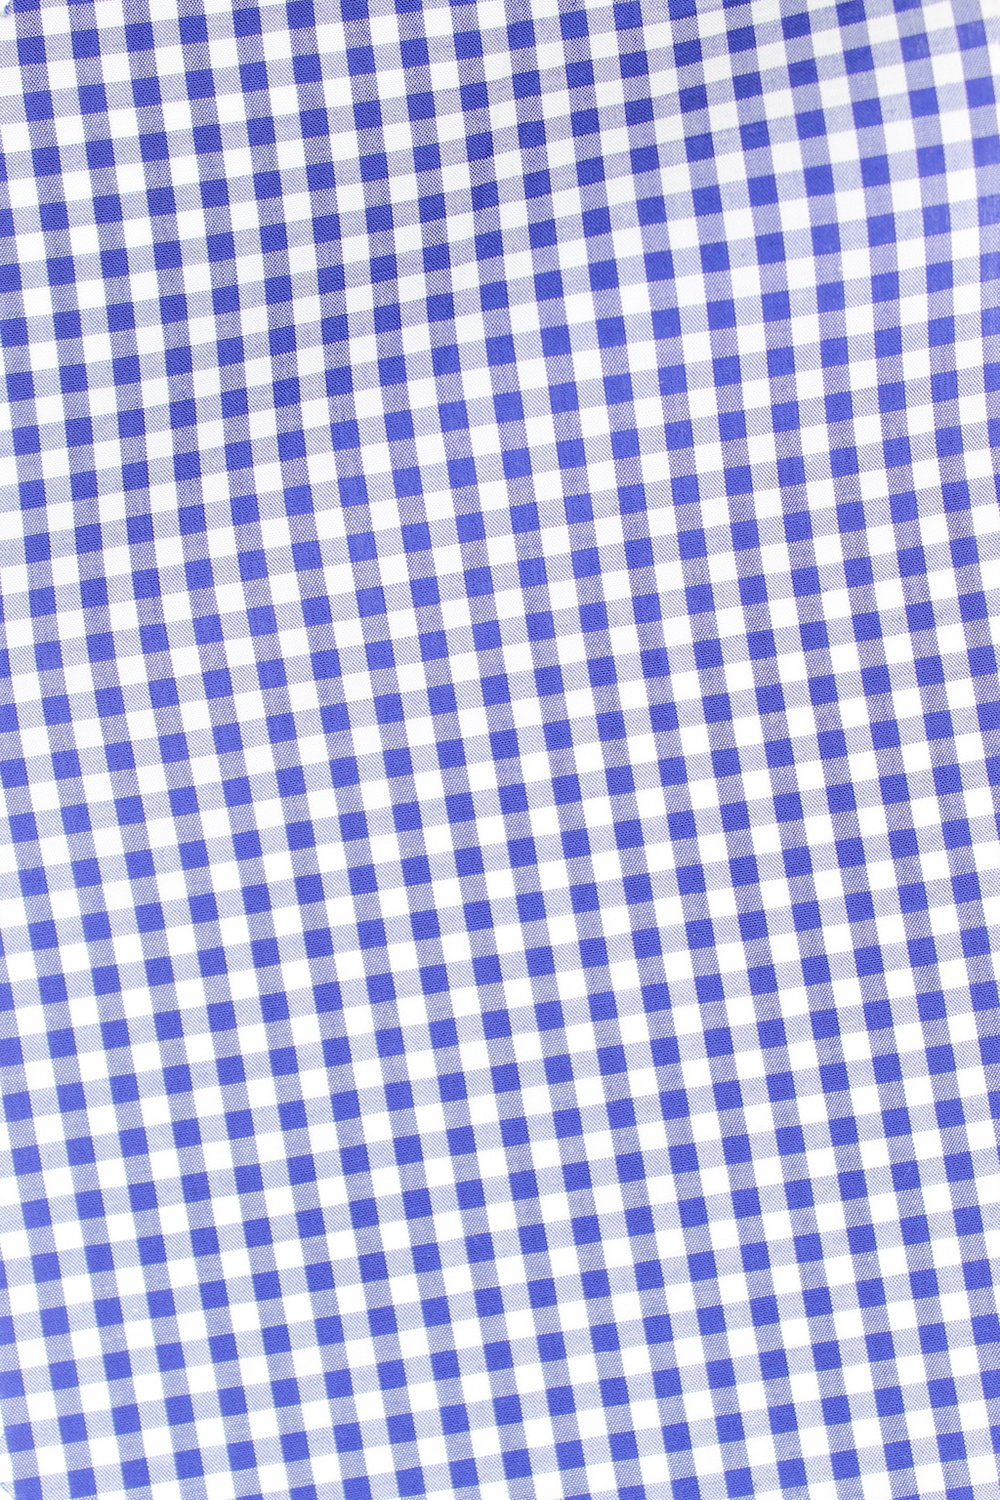 6610 Medium Royal Gingham.JPG